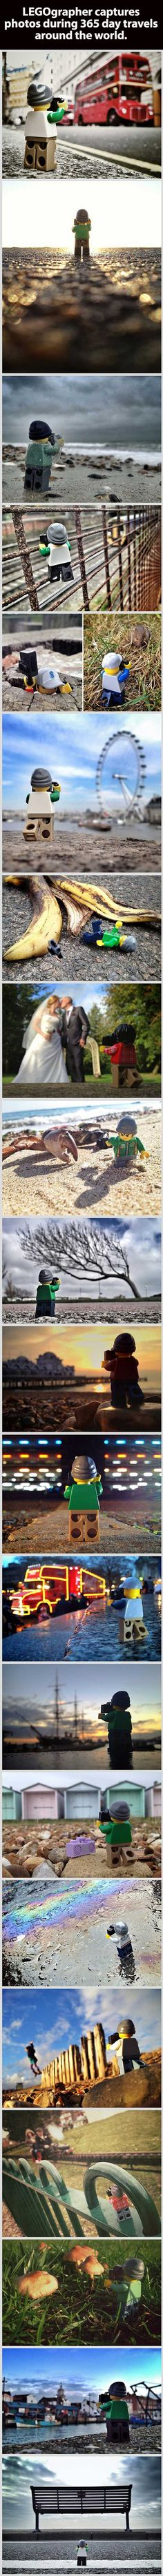 Tiny LEGOgrapher travels the world in 365 day project by Andrew Whyte